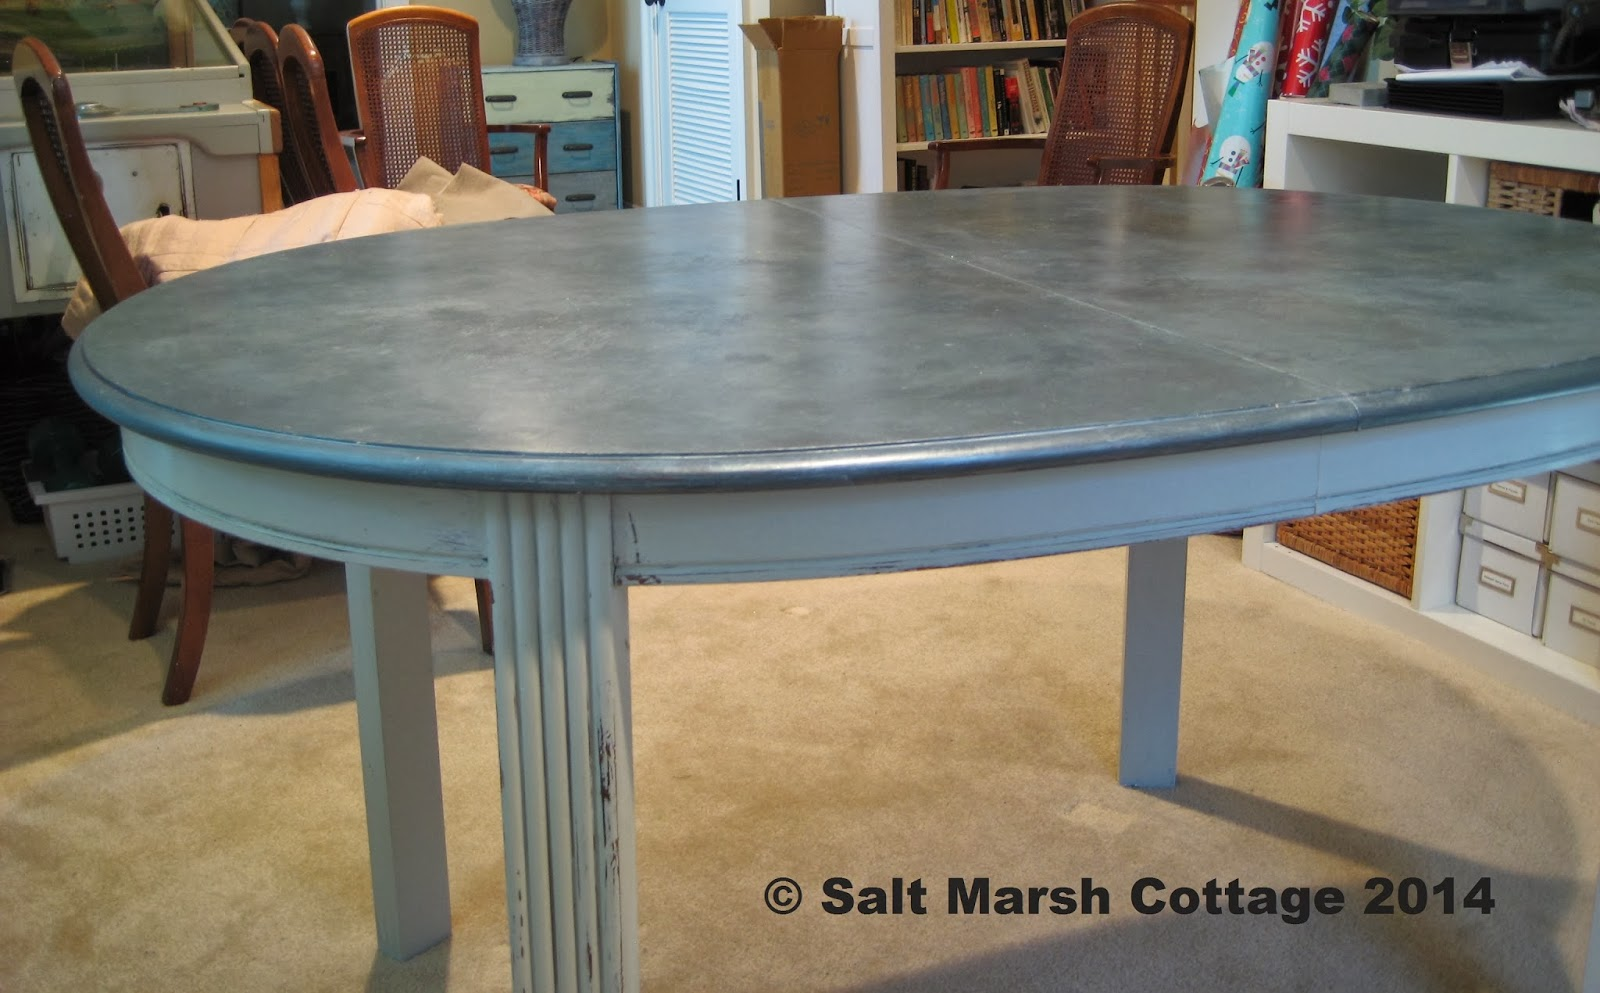 Epic  off table with the faux zinc finish that used to be our dining table before we got the larger farmhouse table It will be perfect for playing games and